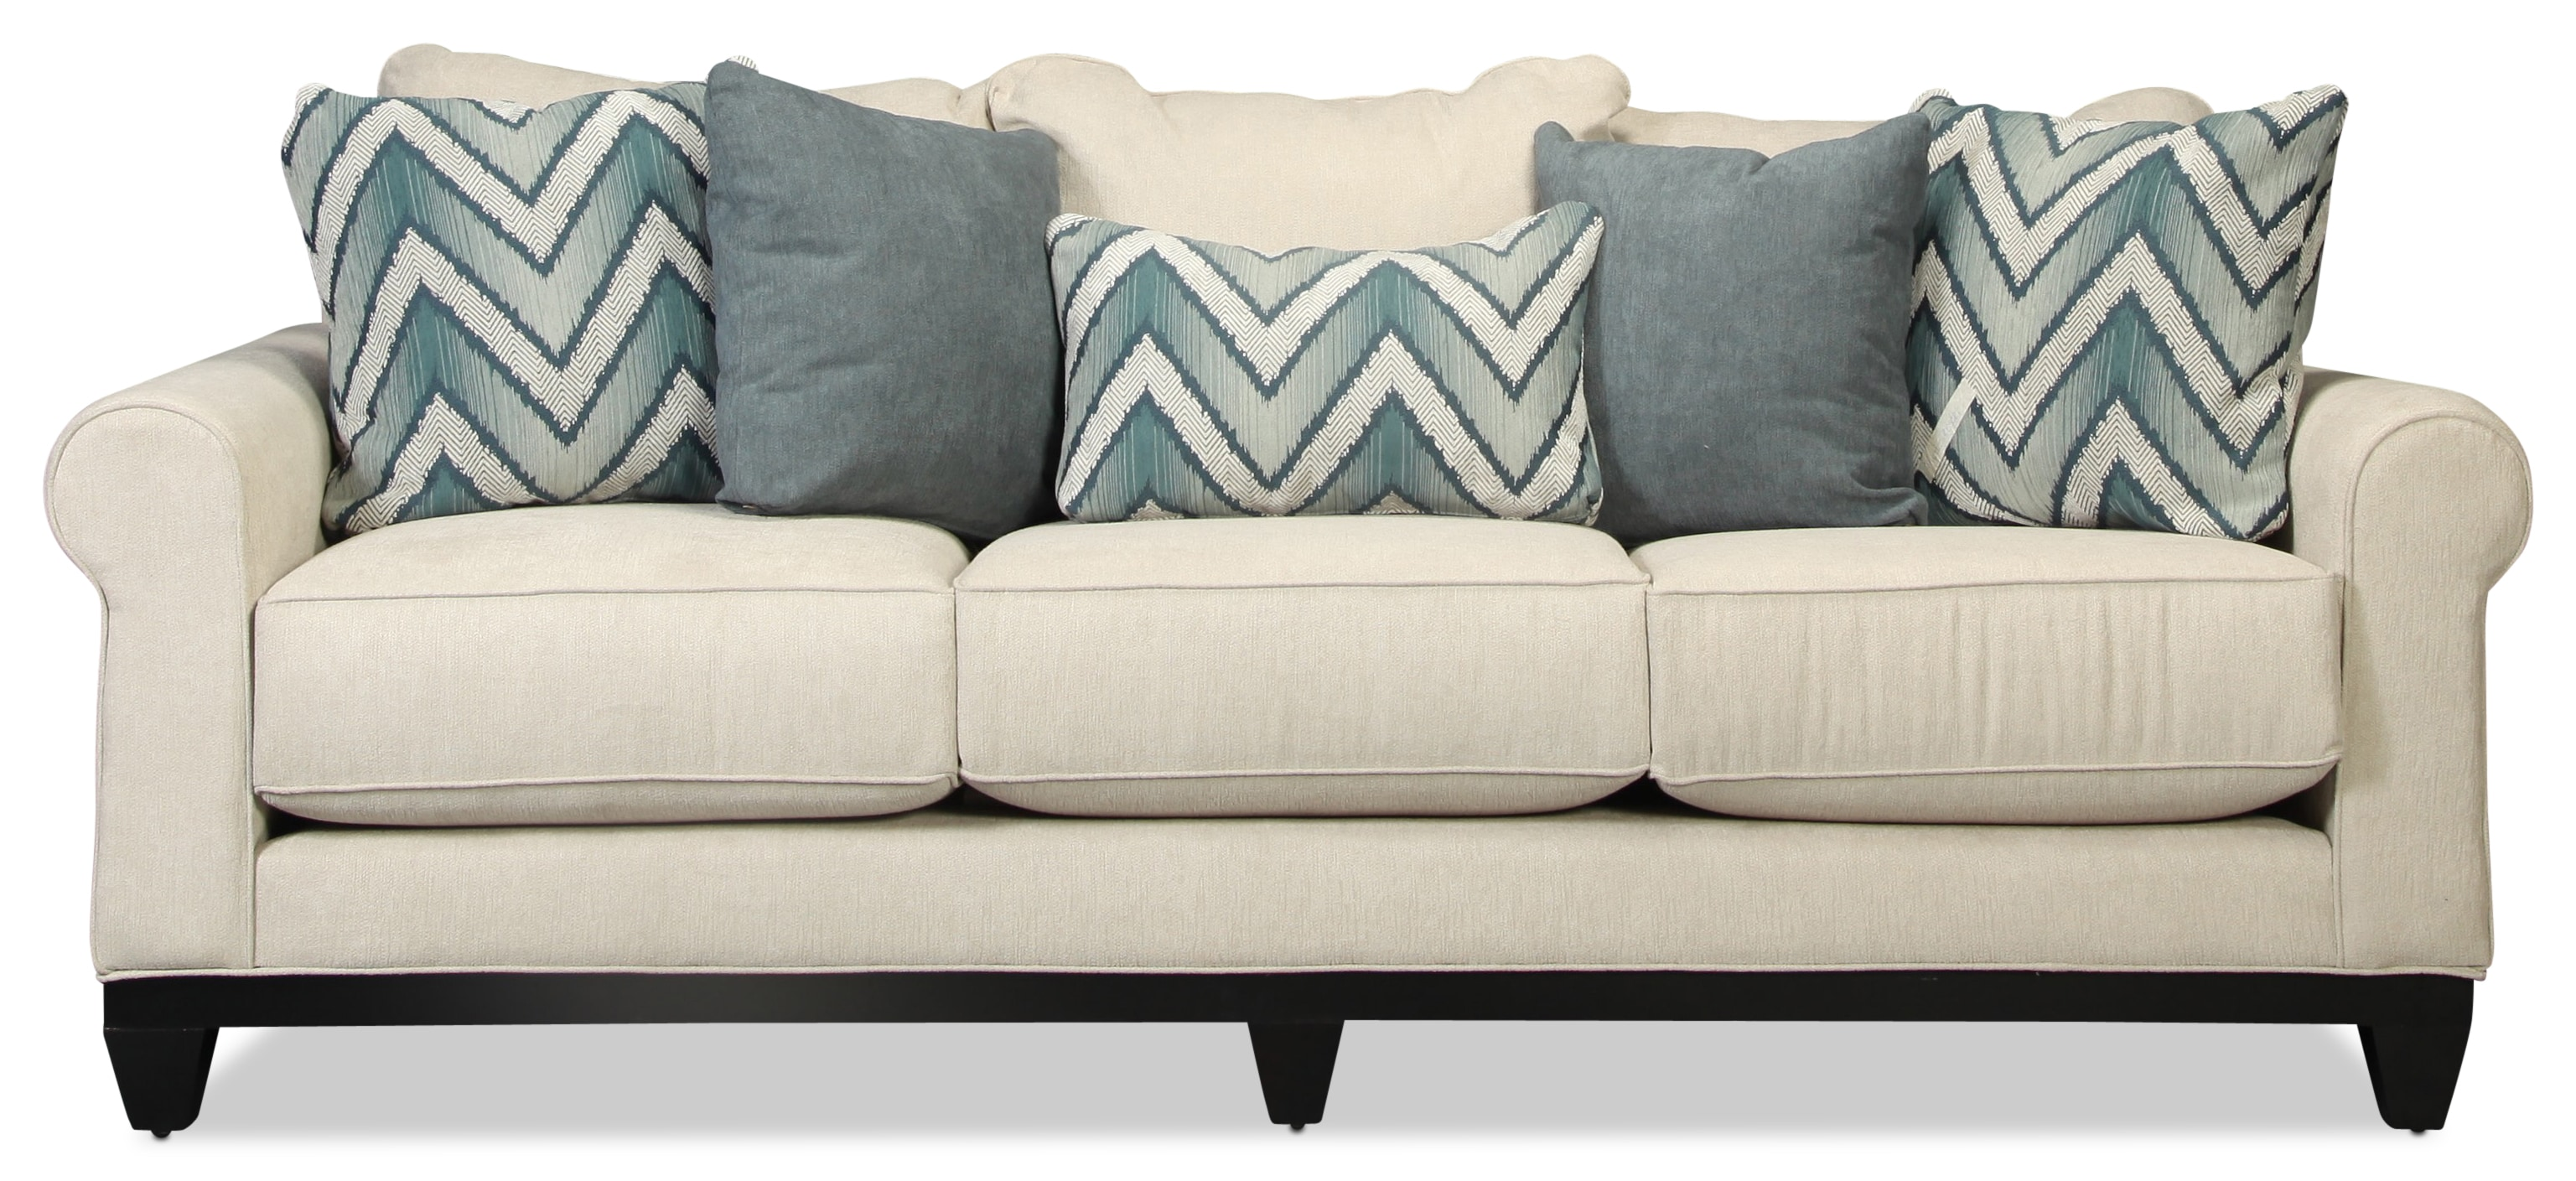 Sunset Beach Sofa - Flax